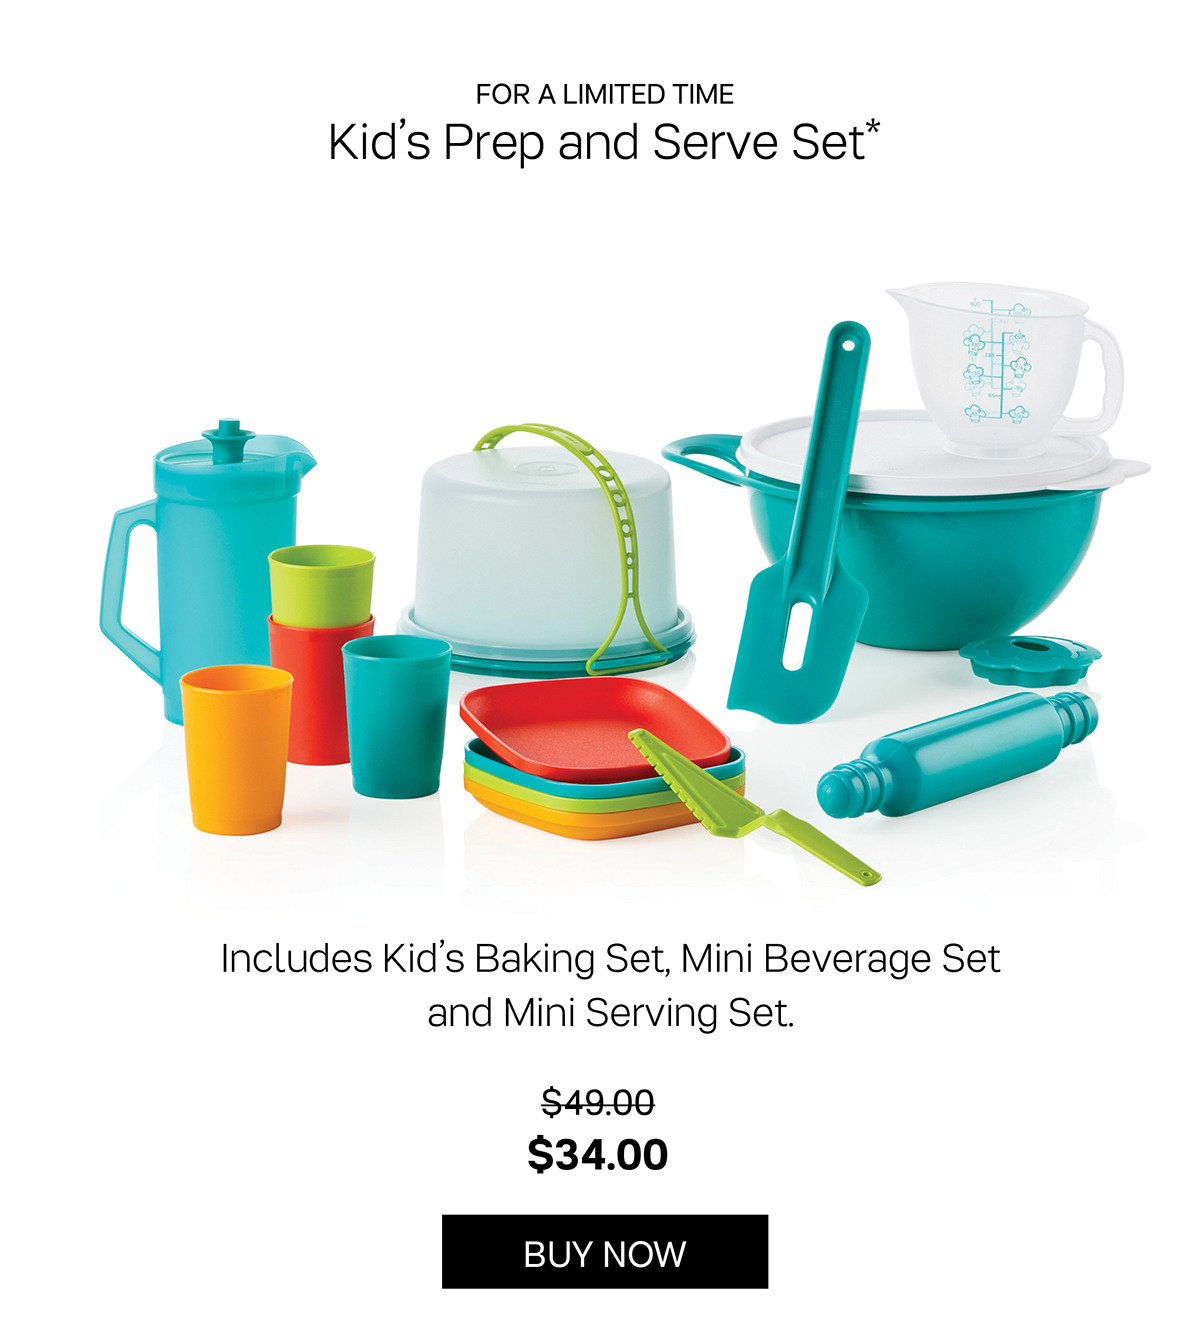 Kid's Prep and Serve Set